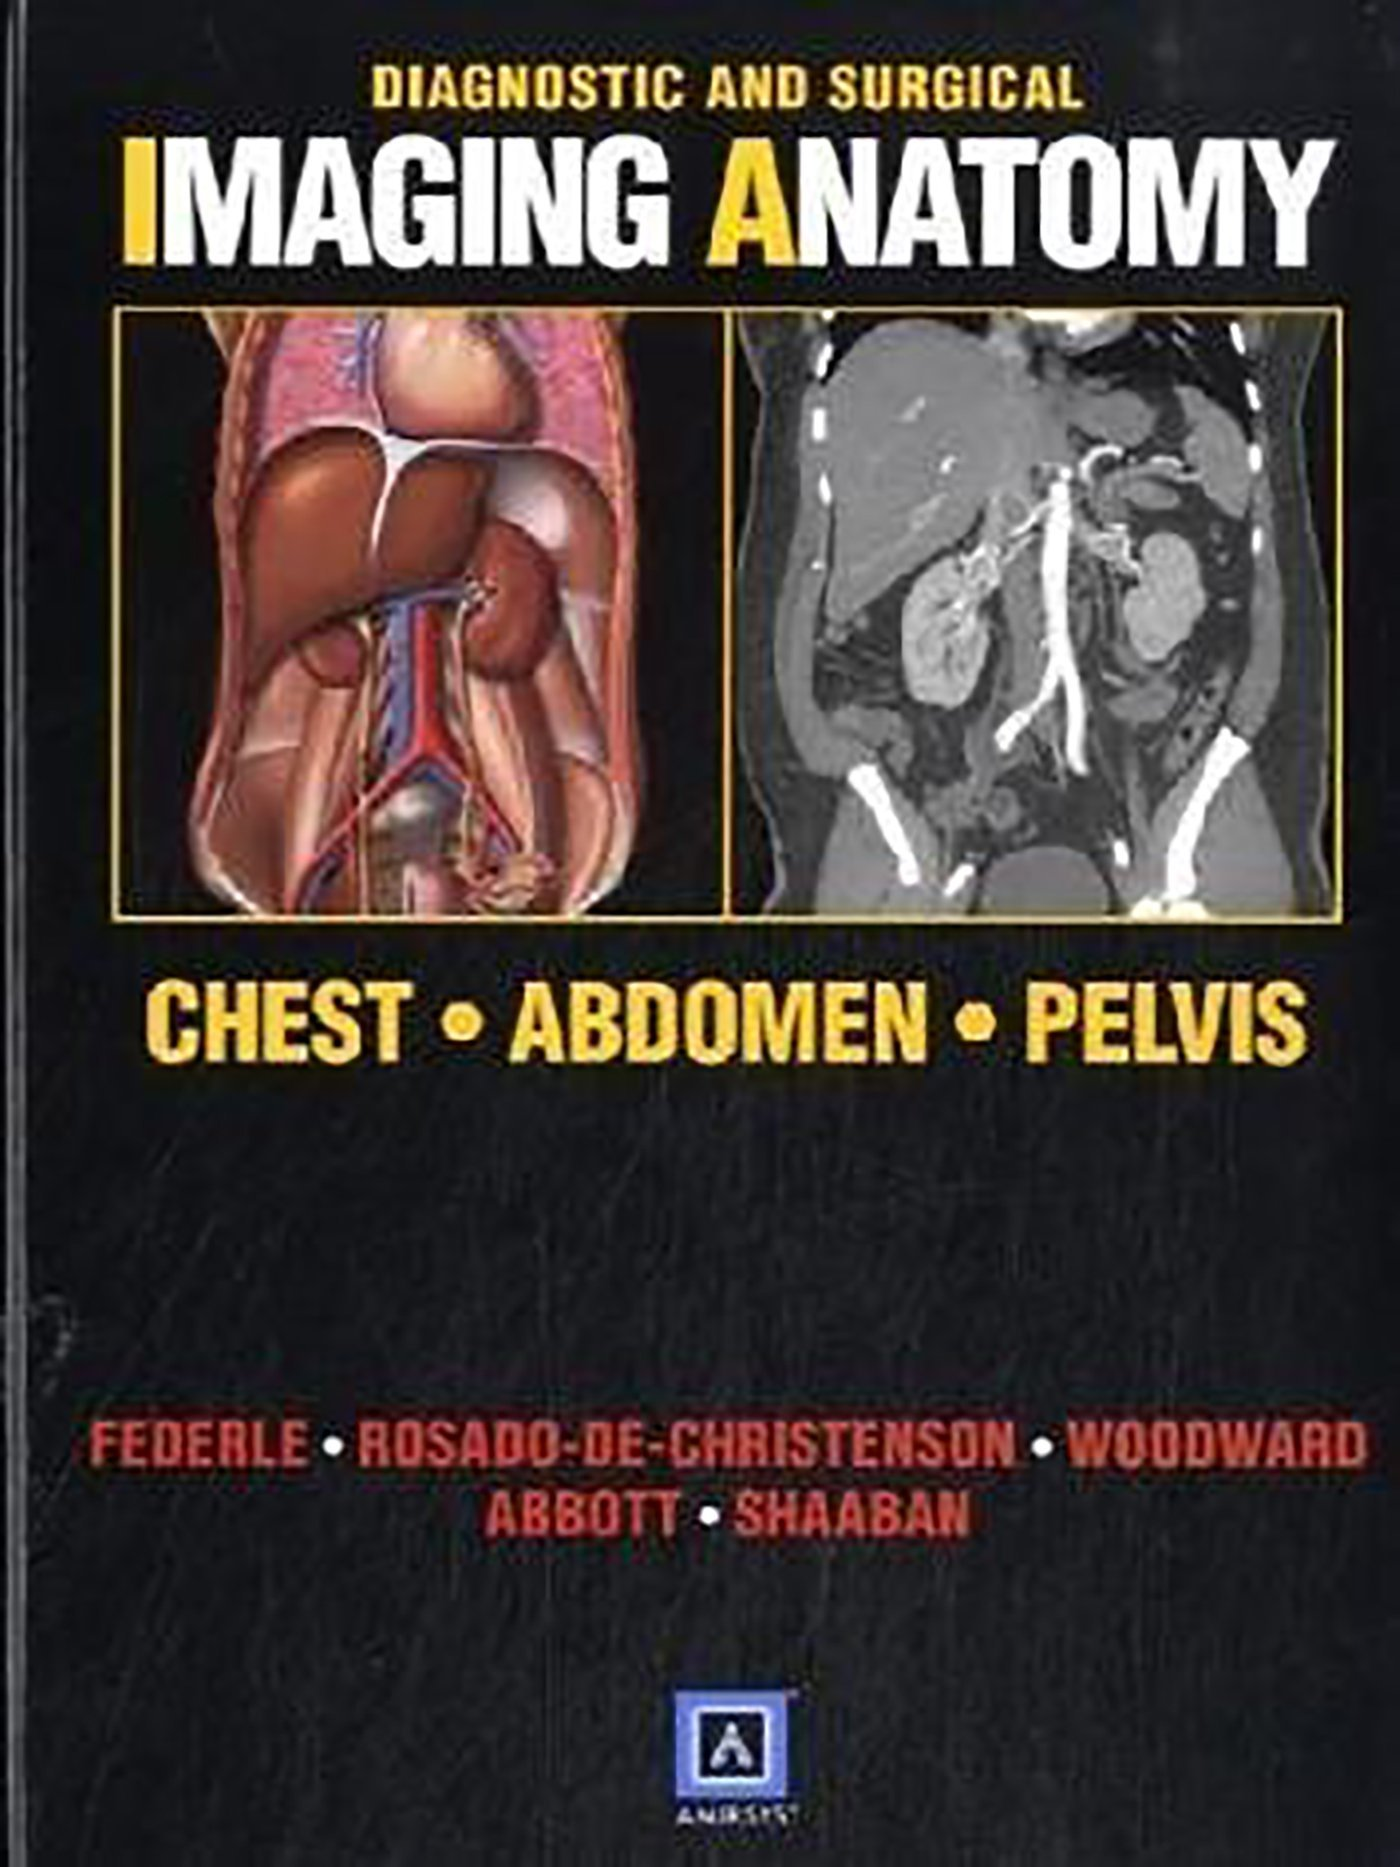 Diagnostic and Surgical Imaging Anatomy: Chest, Abdomen, Pelvis by ...